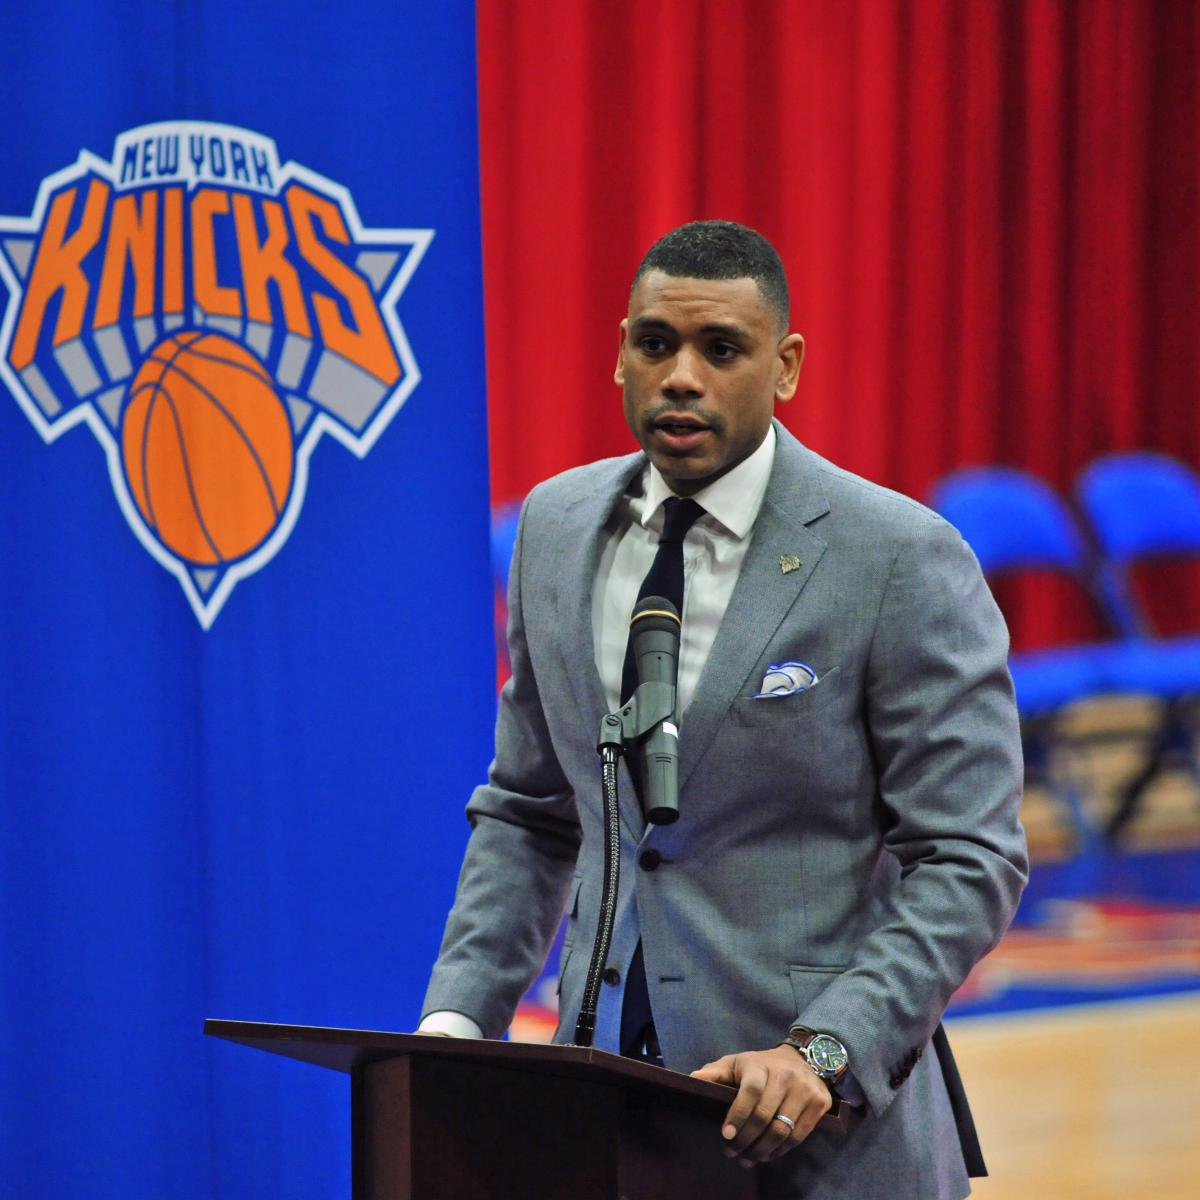 Knicks Rumors: Allan Houston Considered for Promotion in NY's Front Office